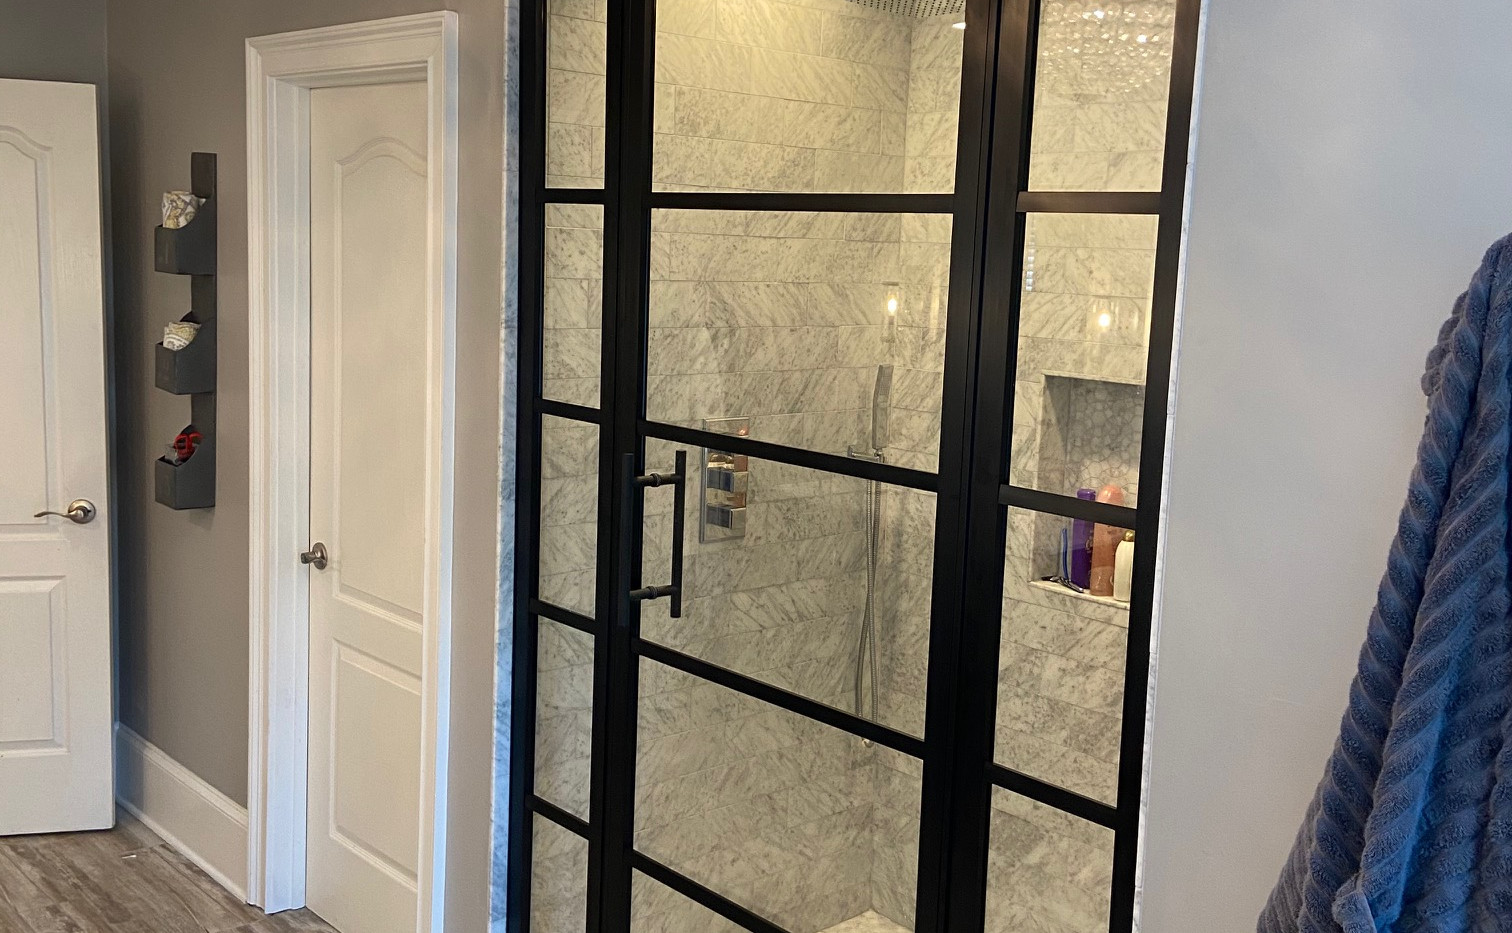 180 Degree Gridscape with Centered Door